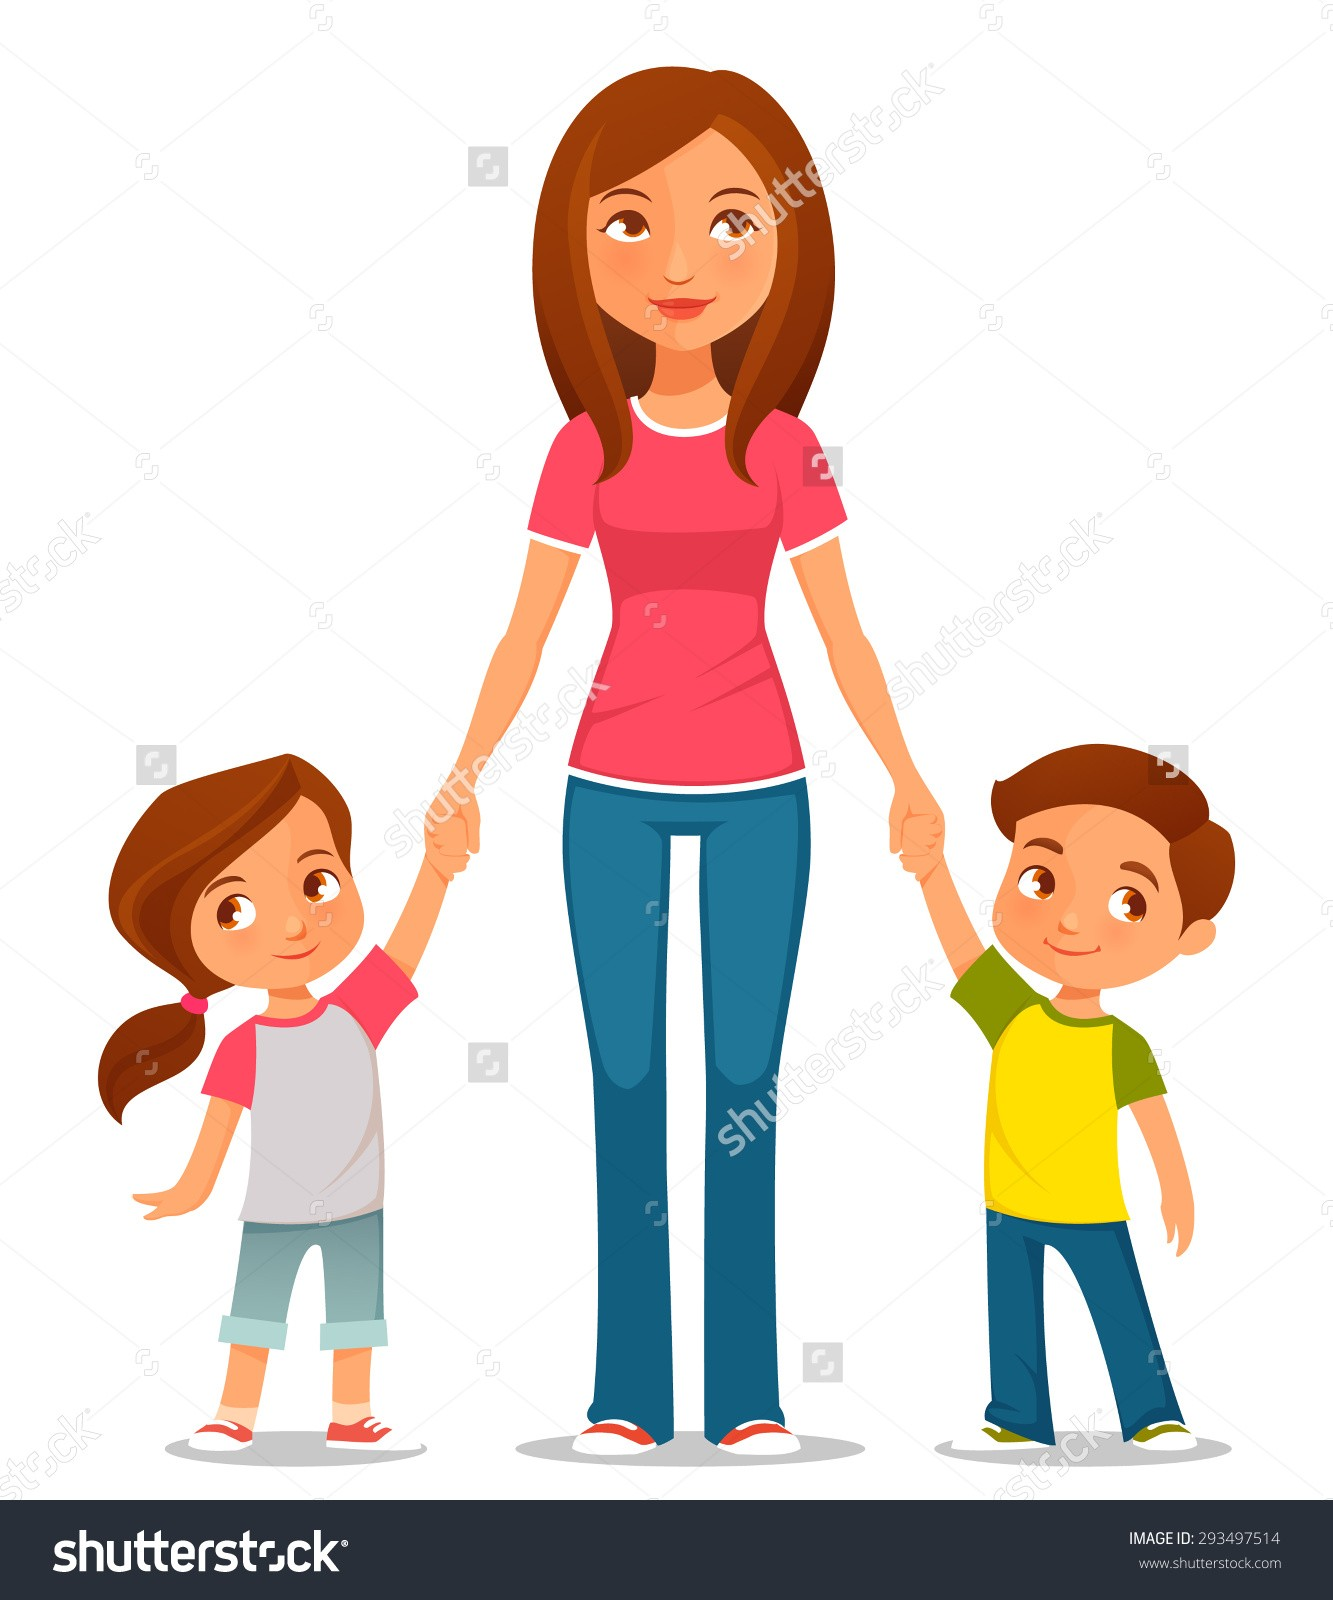 Mother with children clipart clip art free stock For Clipart Of Mother Mom With Kids 4 | Clip Art clip art free stock